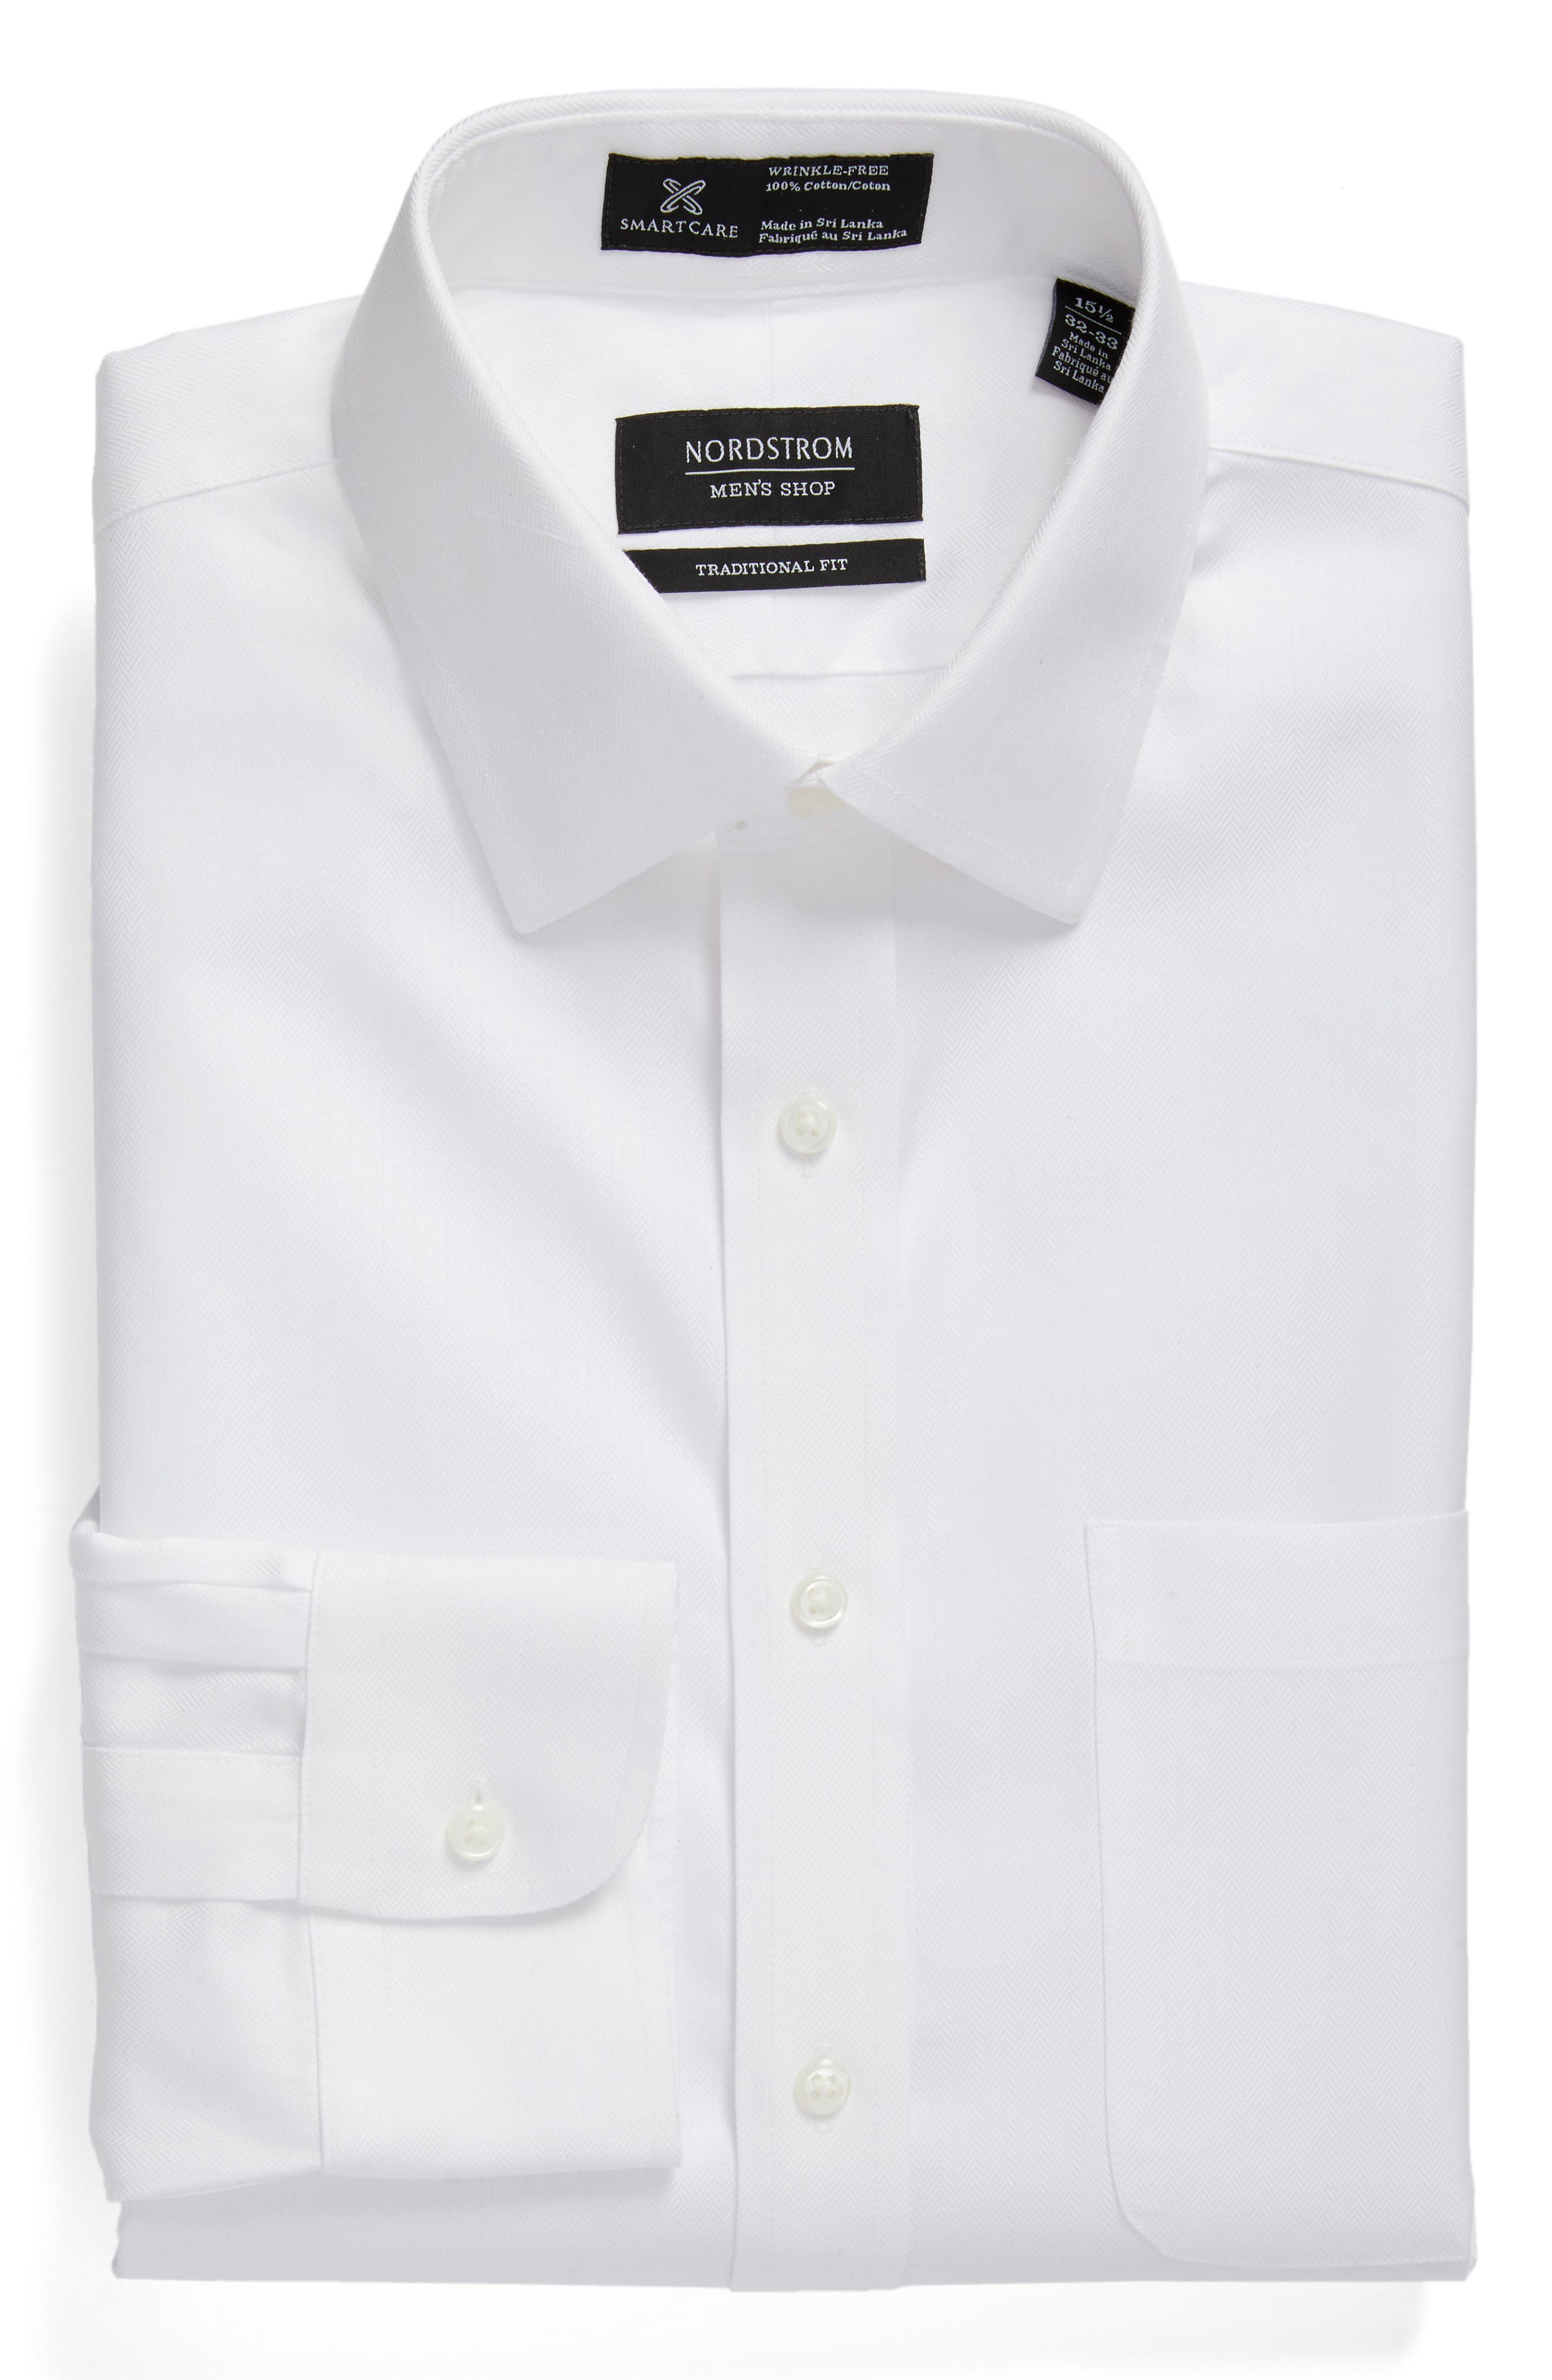 NORDSTROM MENS SHOP Smartcare<sup>™</sup> Traditional Fit Herringbone Dress Shirt